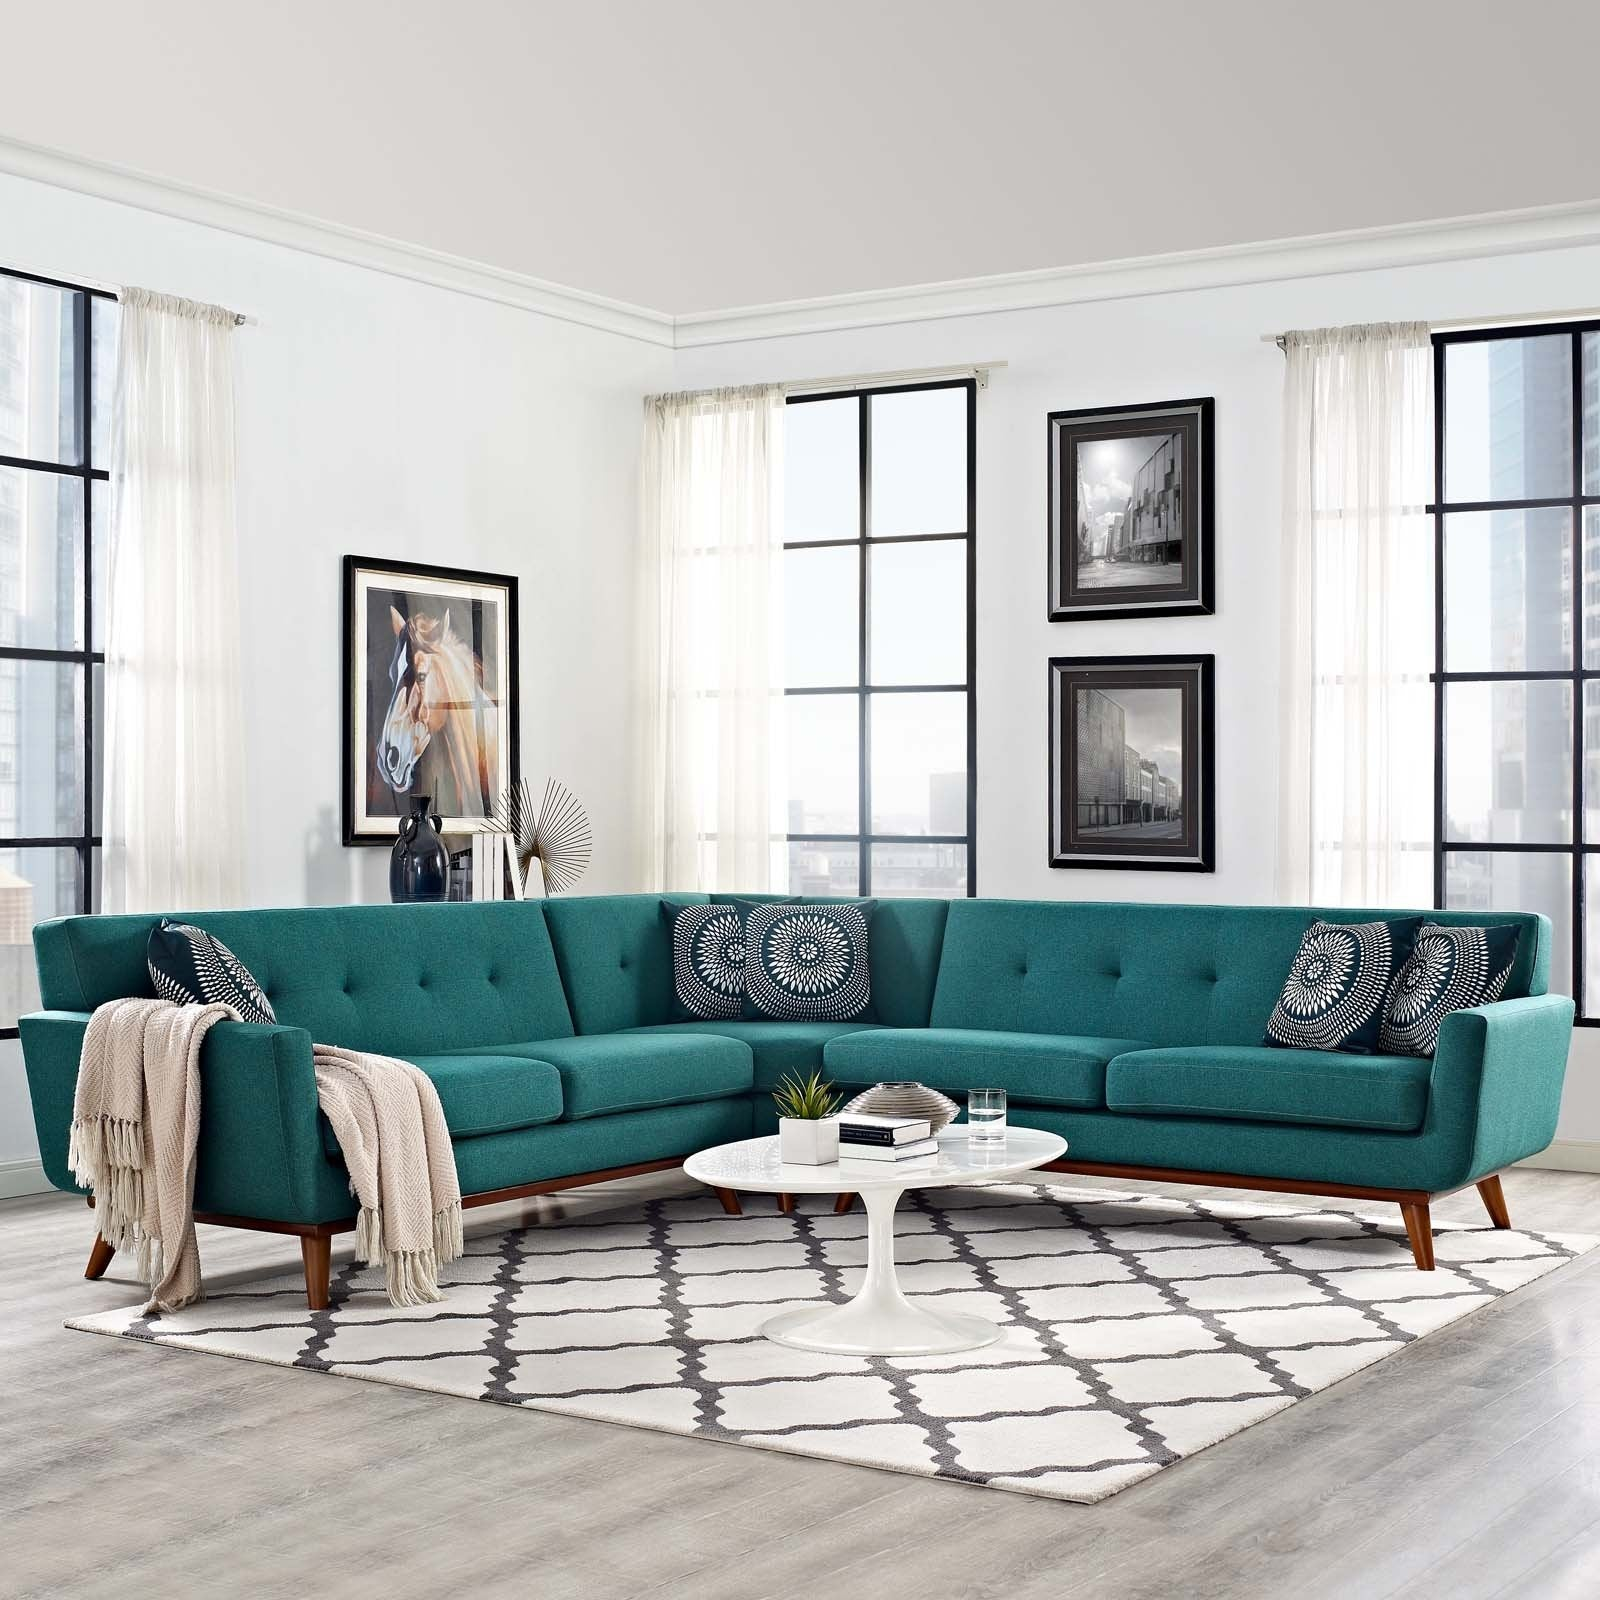 Modway Furniture Modern Fabric Engage L-Shaped Sectional Sofa EEI-2108